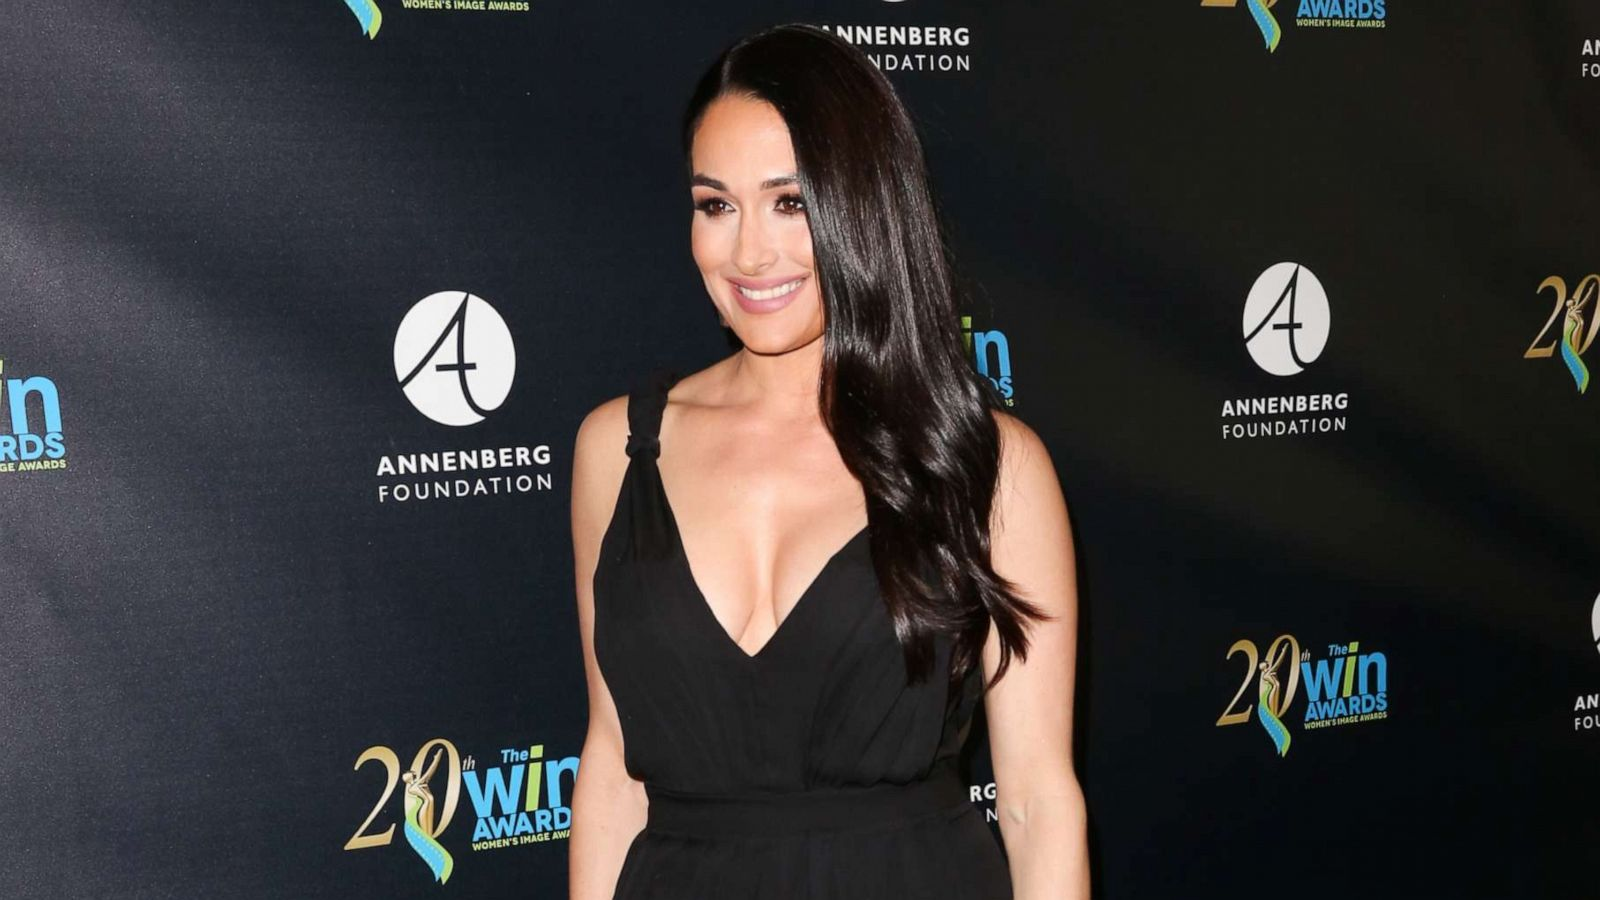 WWE star Nikki Bella announces retirement from wrestling, wants to